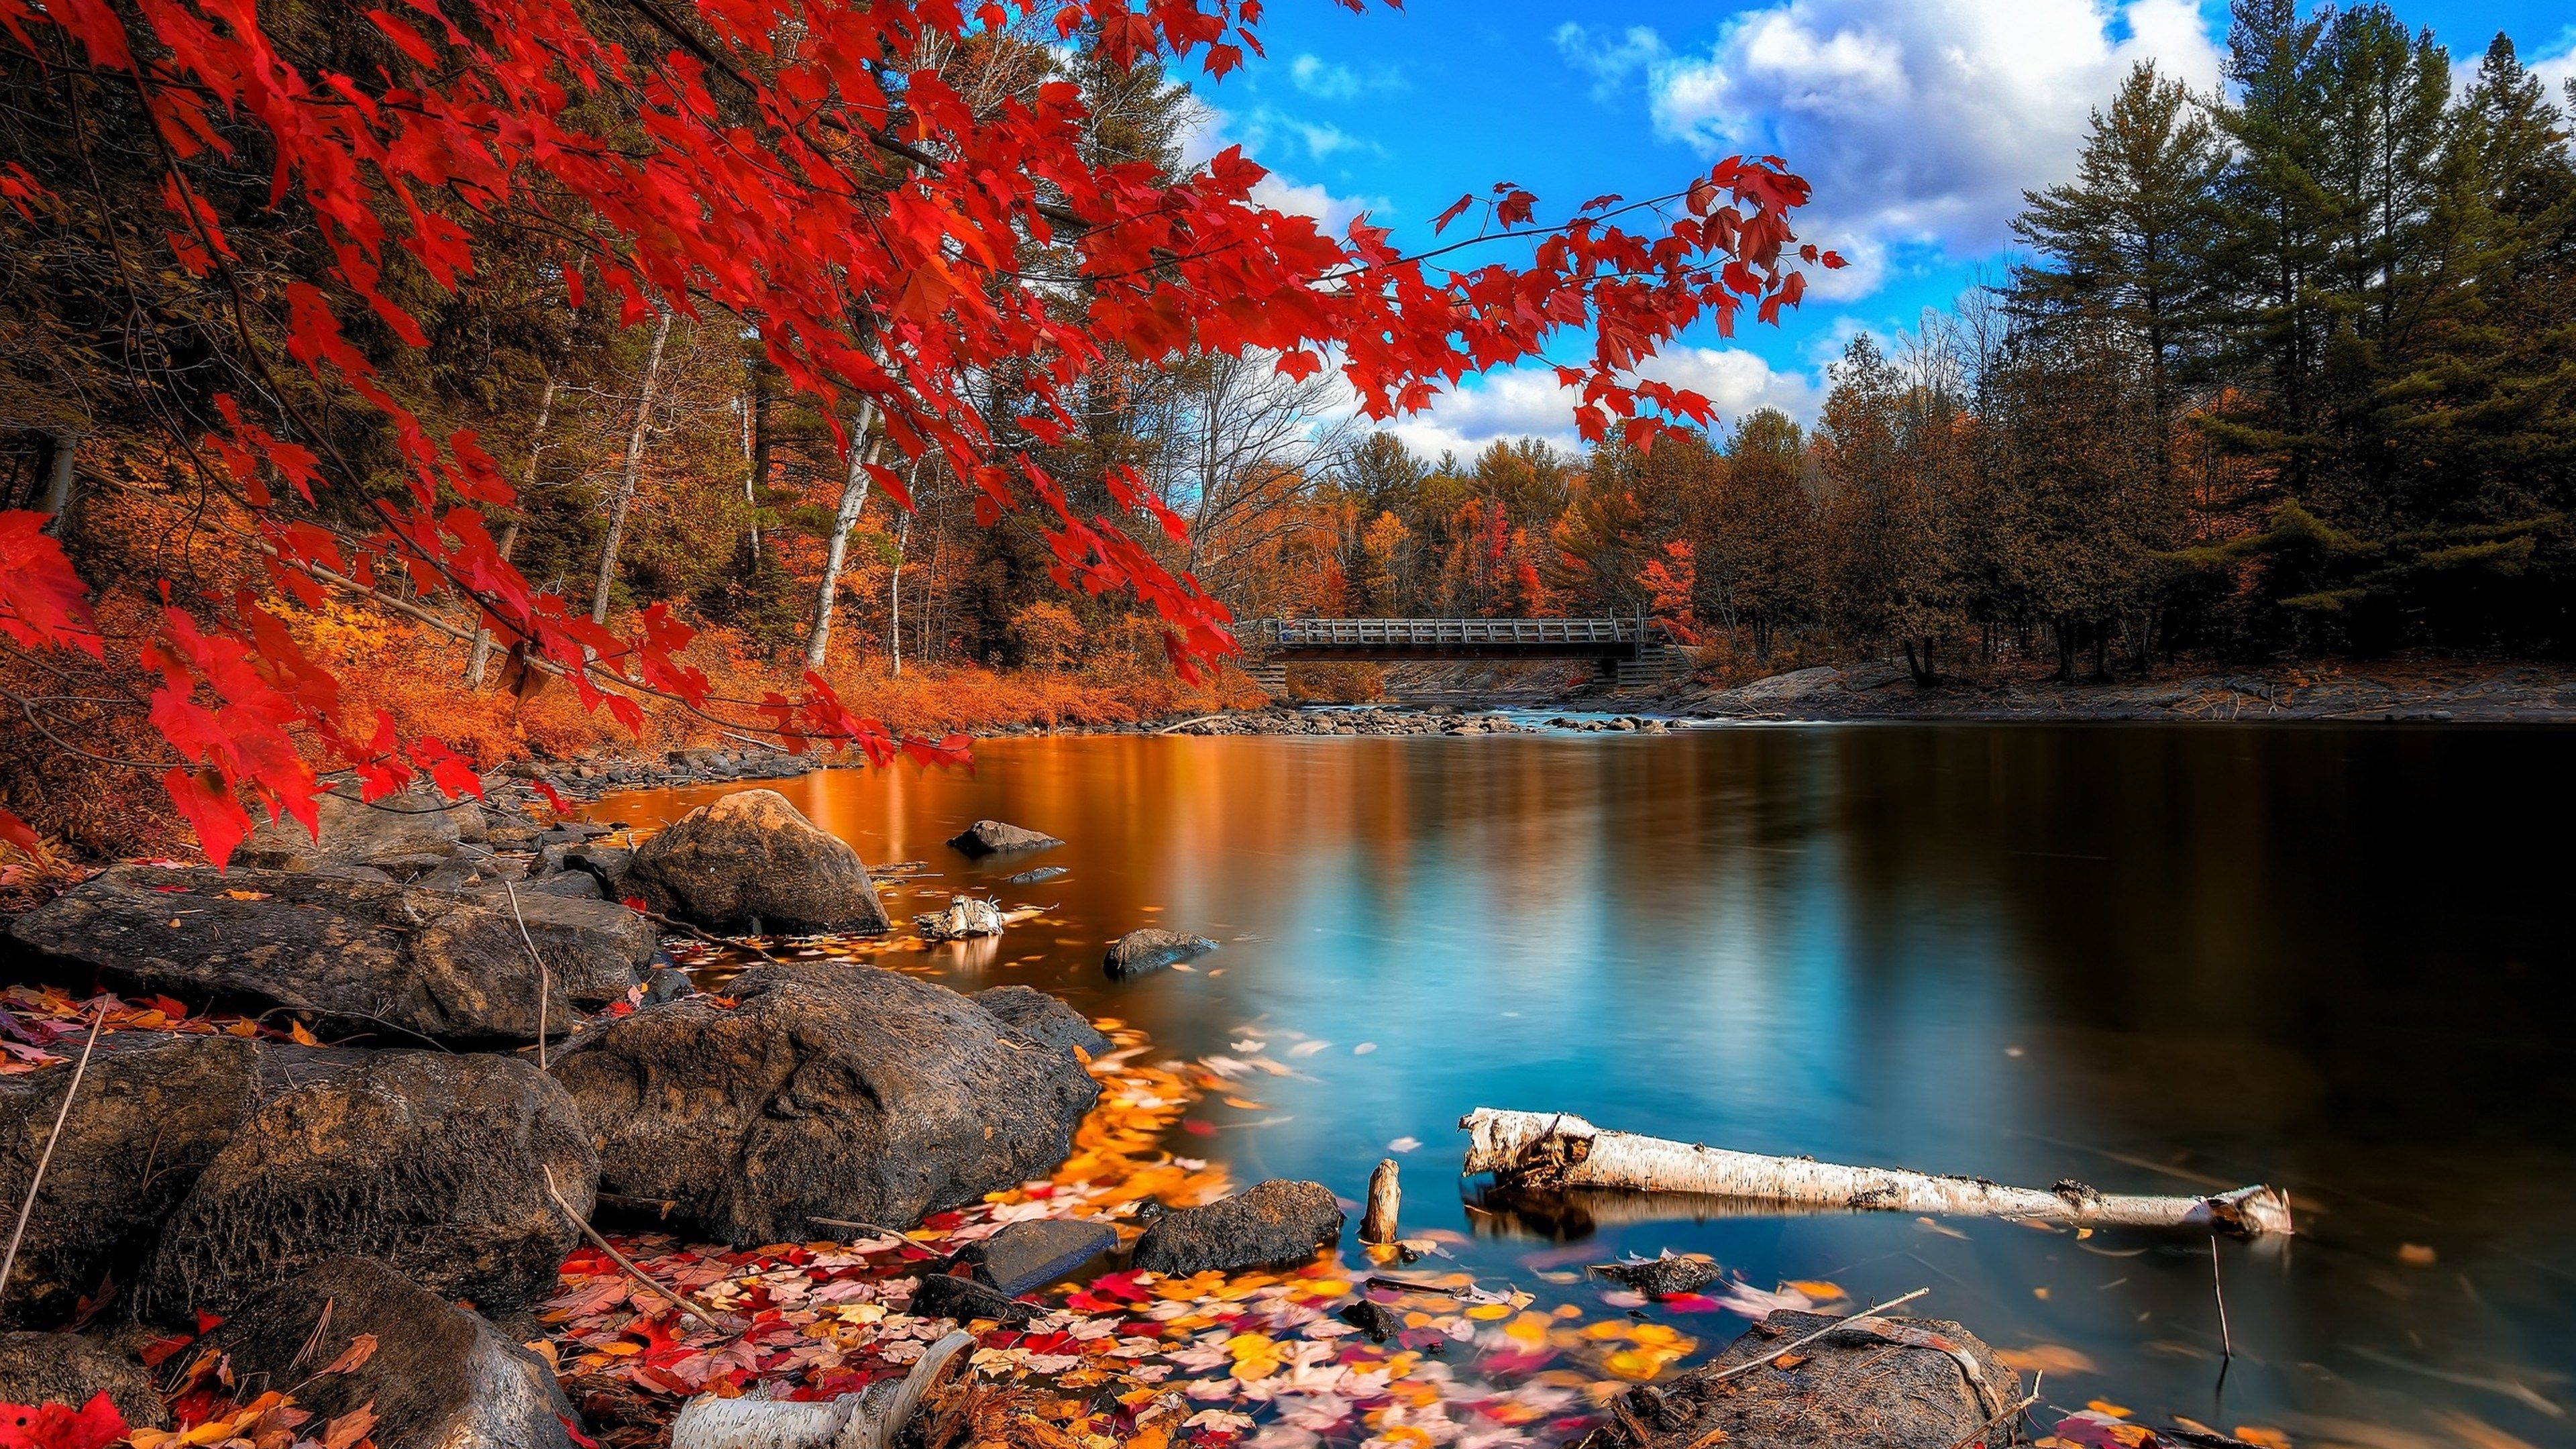 3840x2160 Nature 4k Desktop Wallpaper Cool Autumn Scenery Nature Desktop Hd Nature Wallpapers